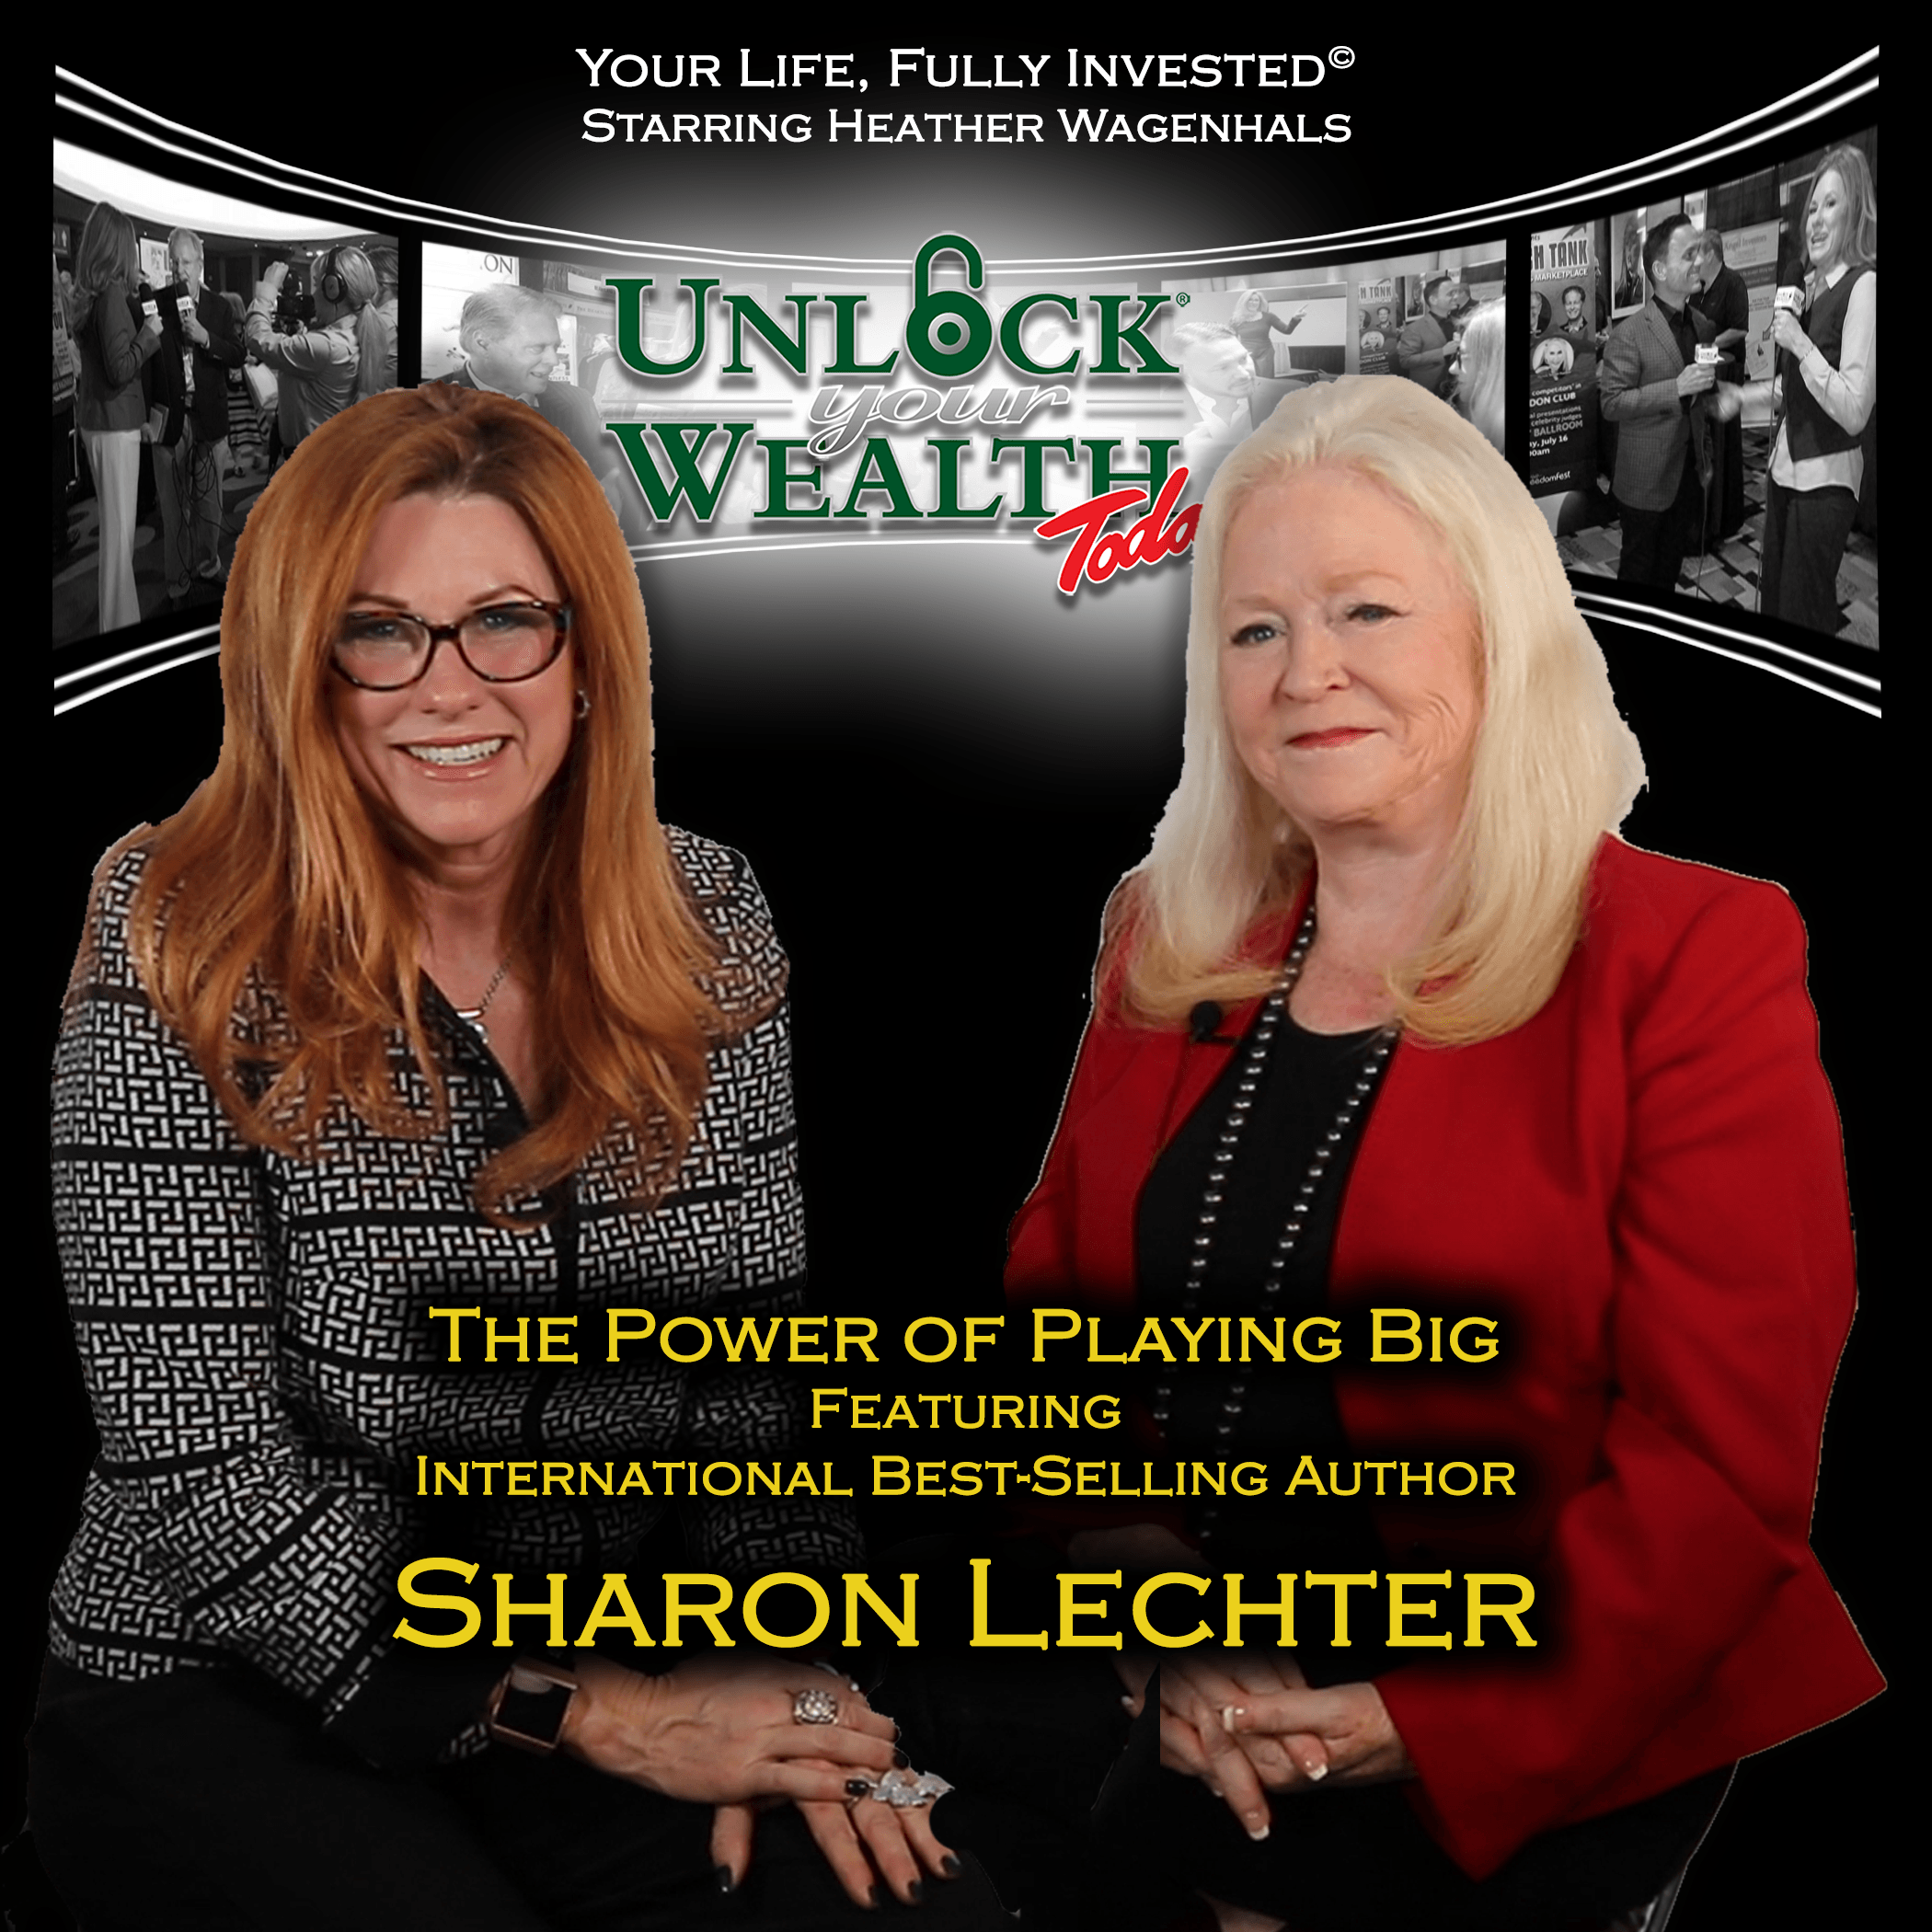 Artwork for Playing Big Movement Featuring Sharon Lechter